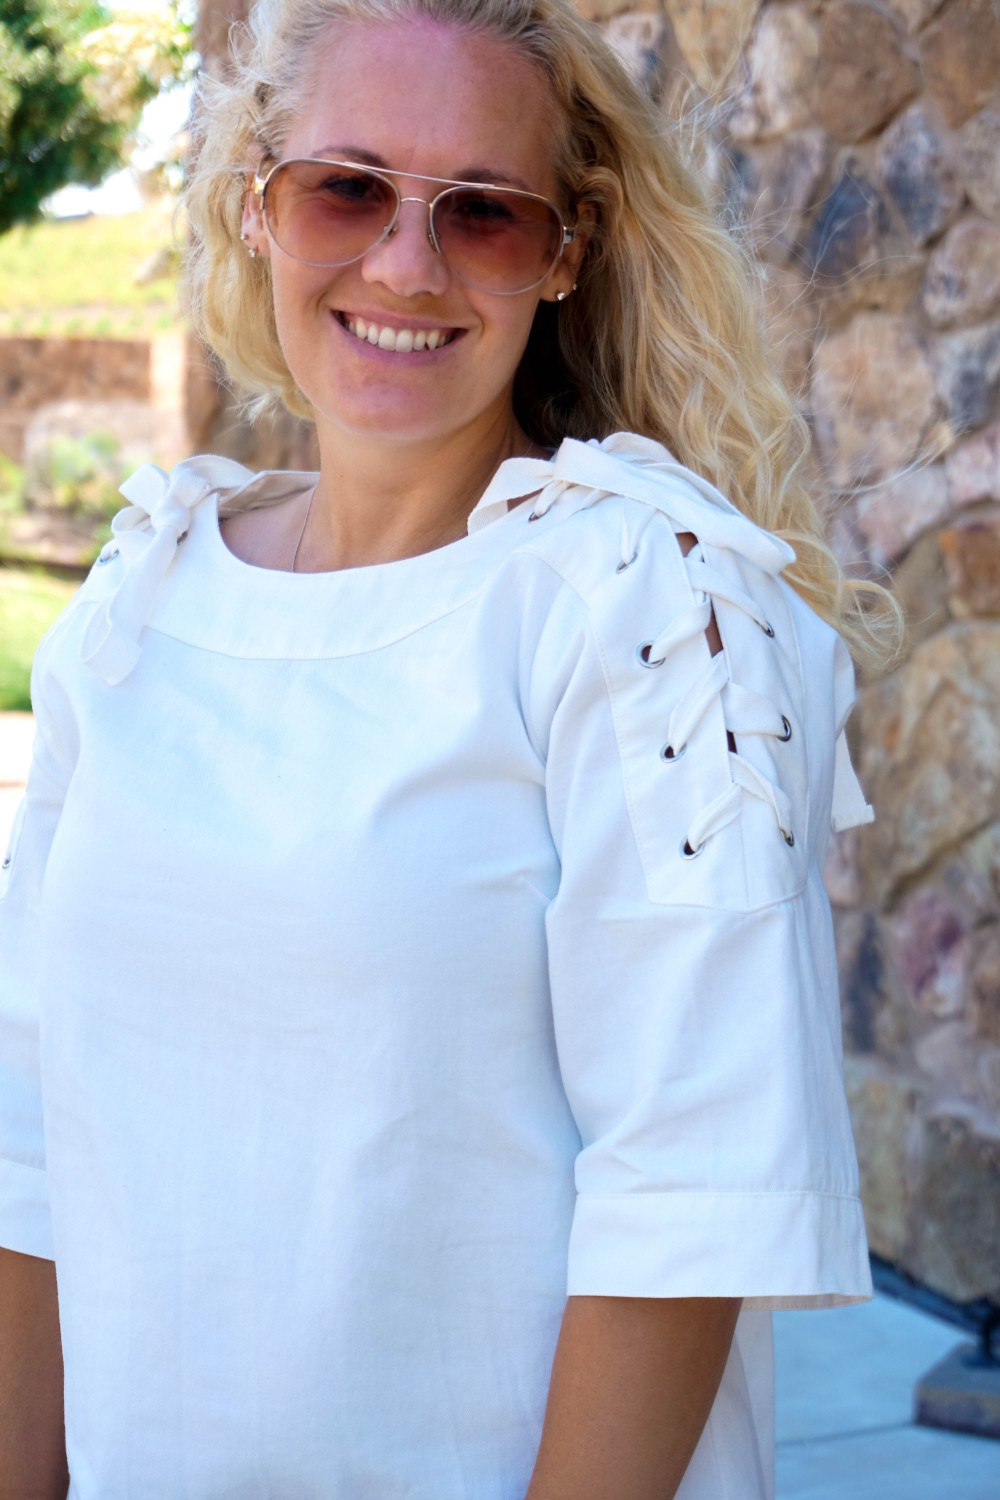 Lace-Up White Denim Dress-JOA Denim Dress-Summer Style-Bijou on the Park-Have Need Want-Outfit Inspiration-Mom Style 12